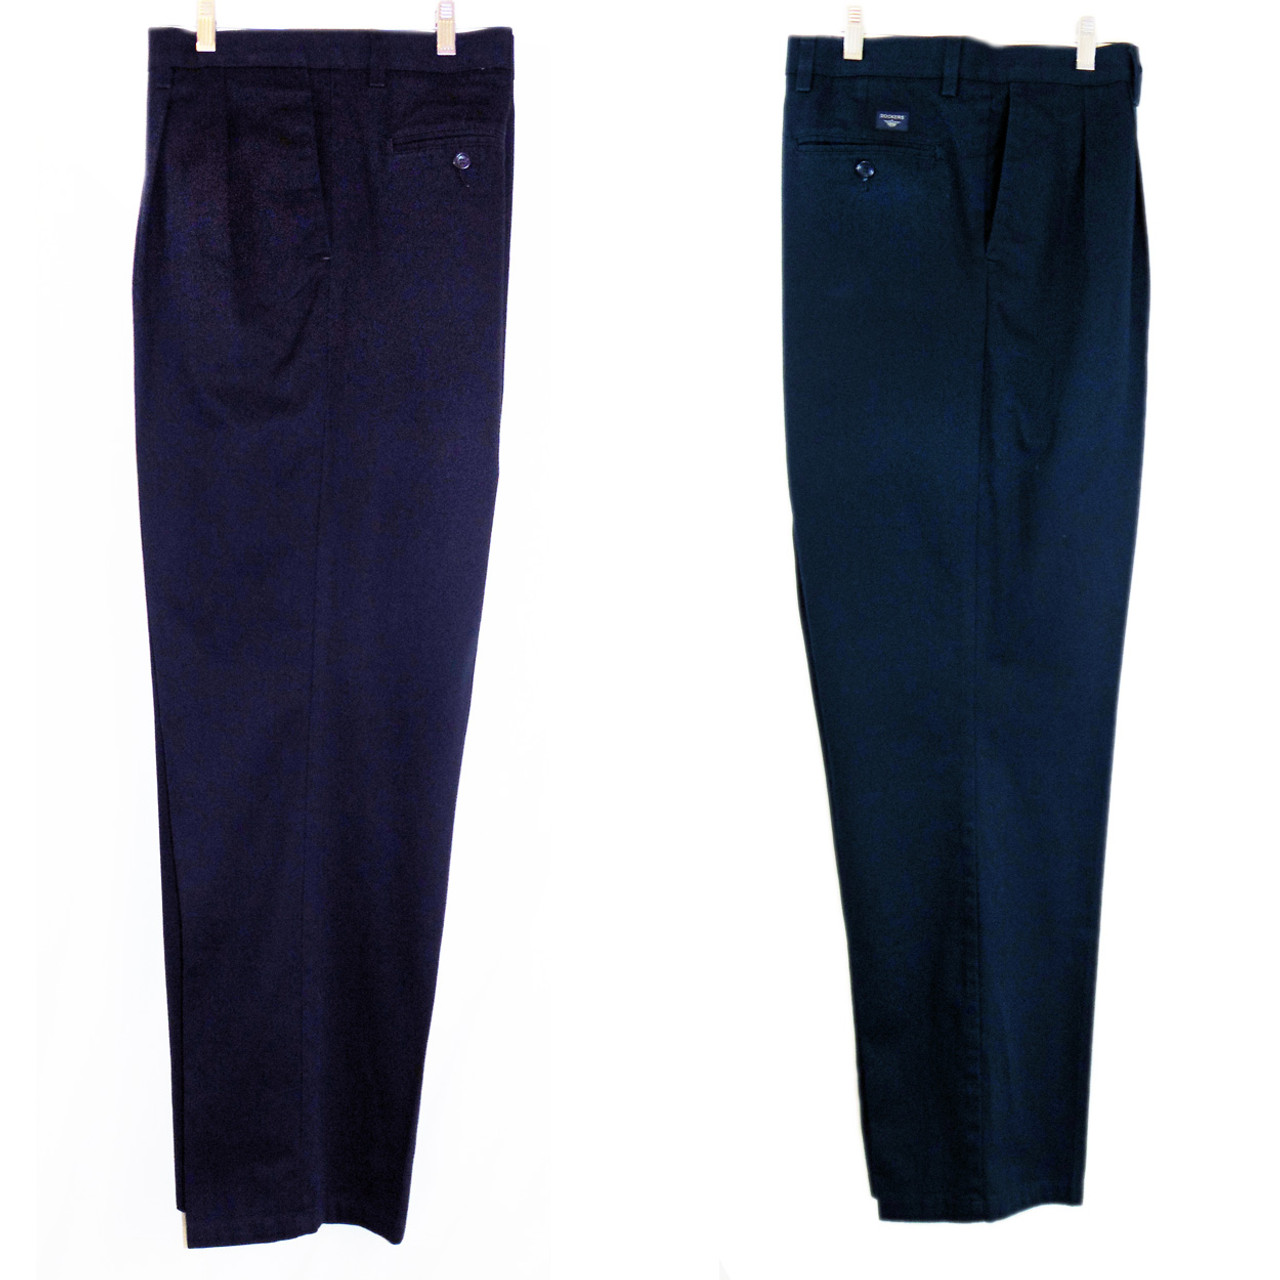 Dockers Individual Fit Navy Pants Size 40 32